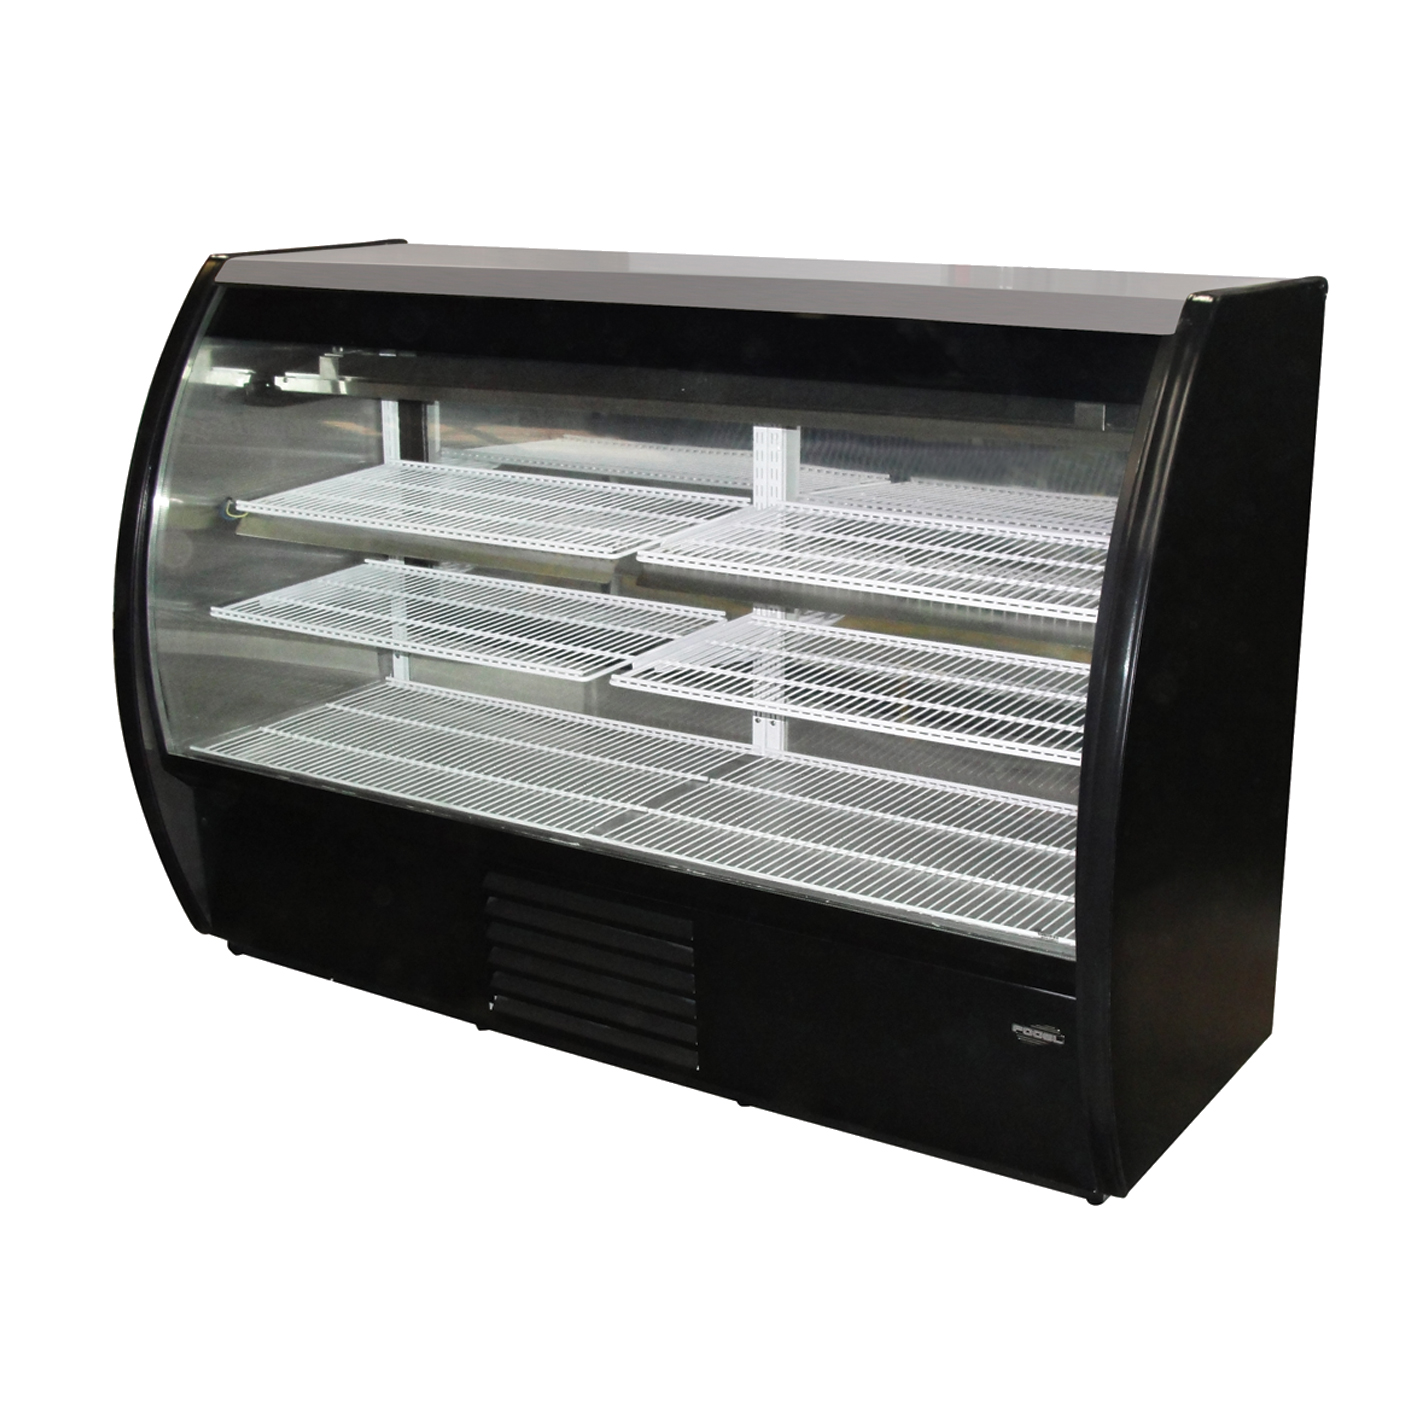 Fogel USA MIRAGE-4-DC-B display case, refrigerated deli